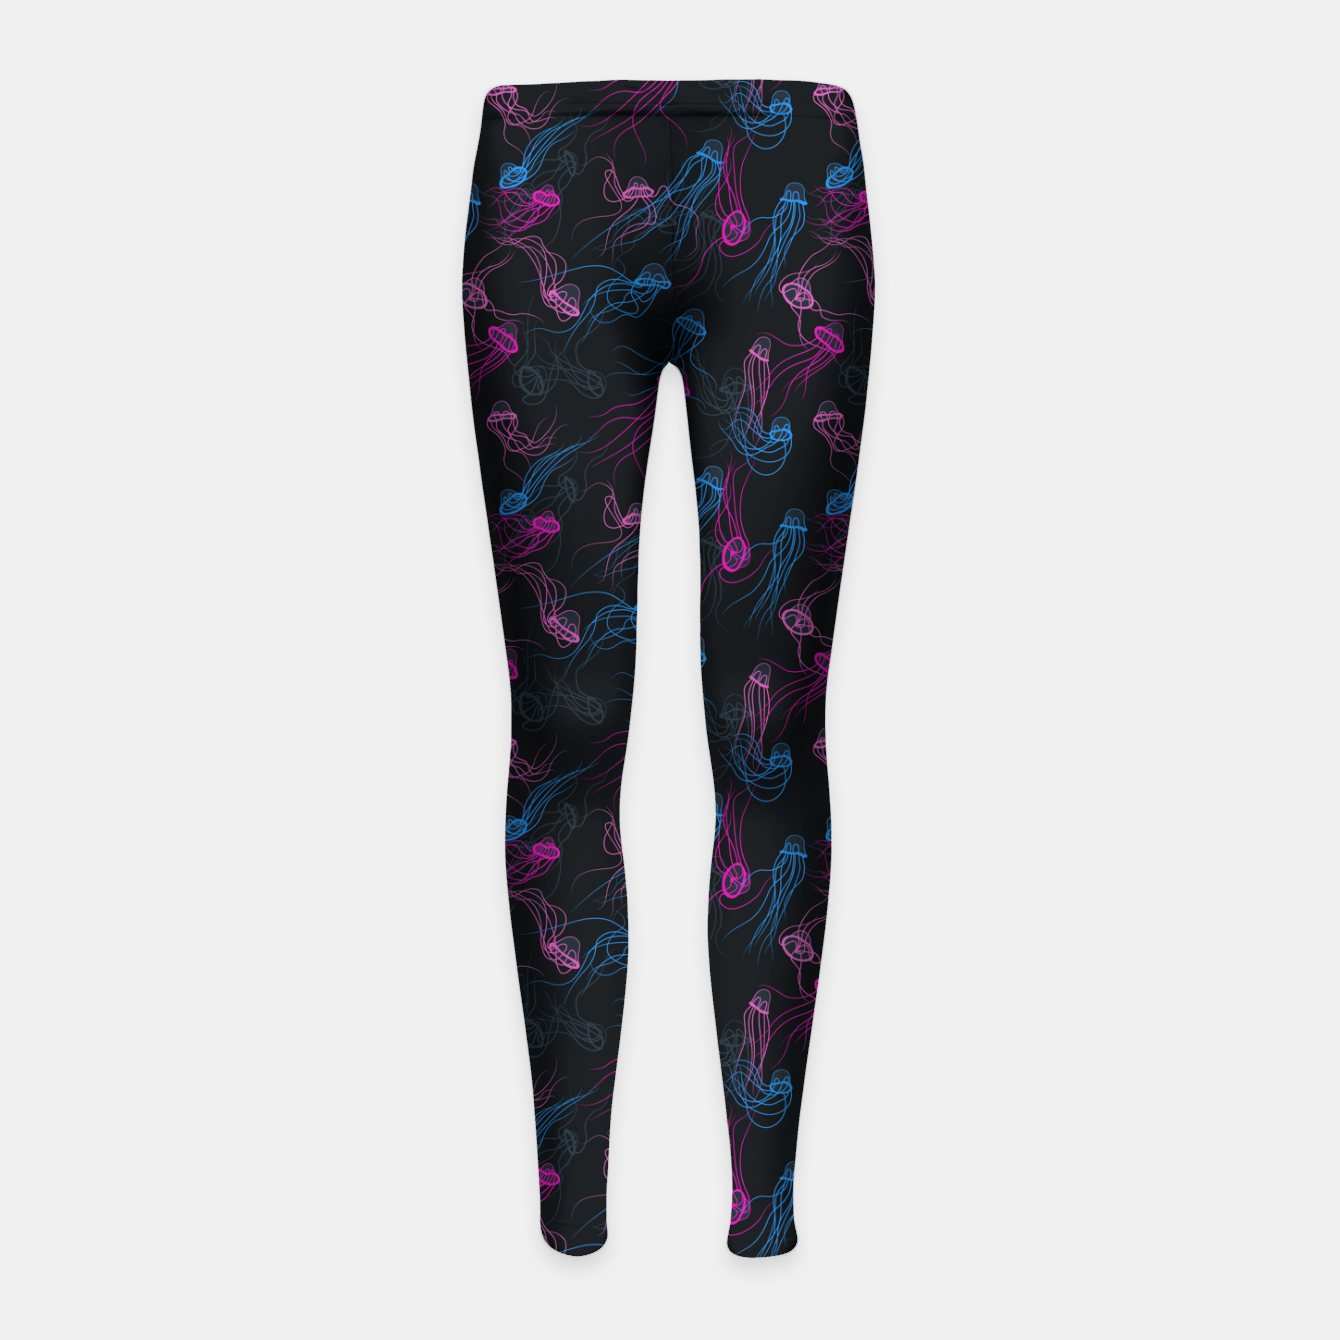 Zdjęcie Magnificent jellyfishes dance in deep space Girl's leggings - Live Heroes